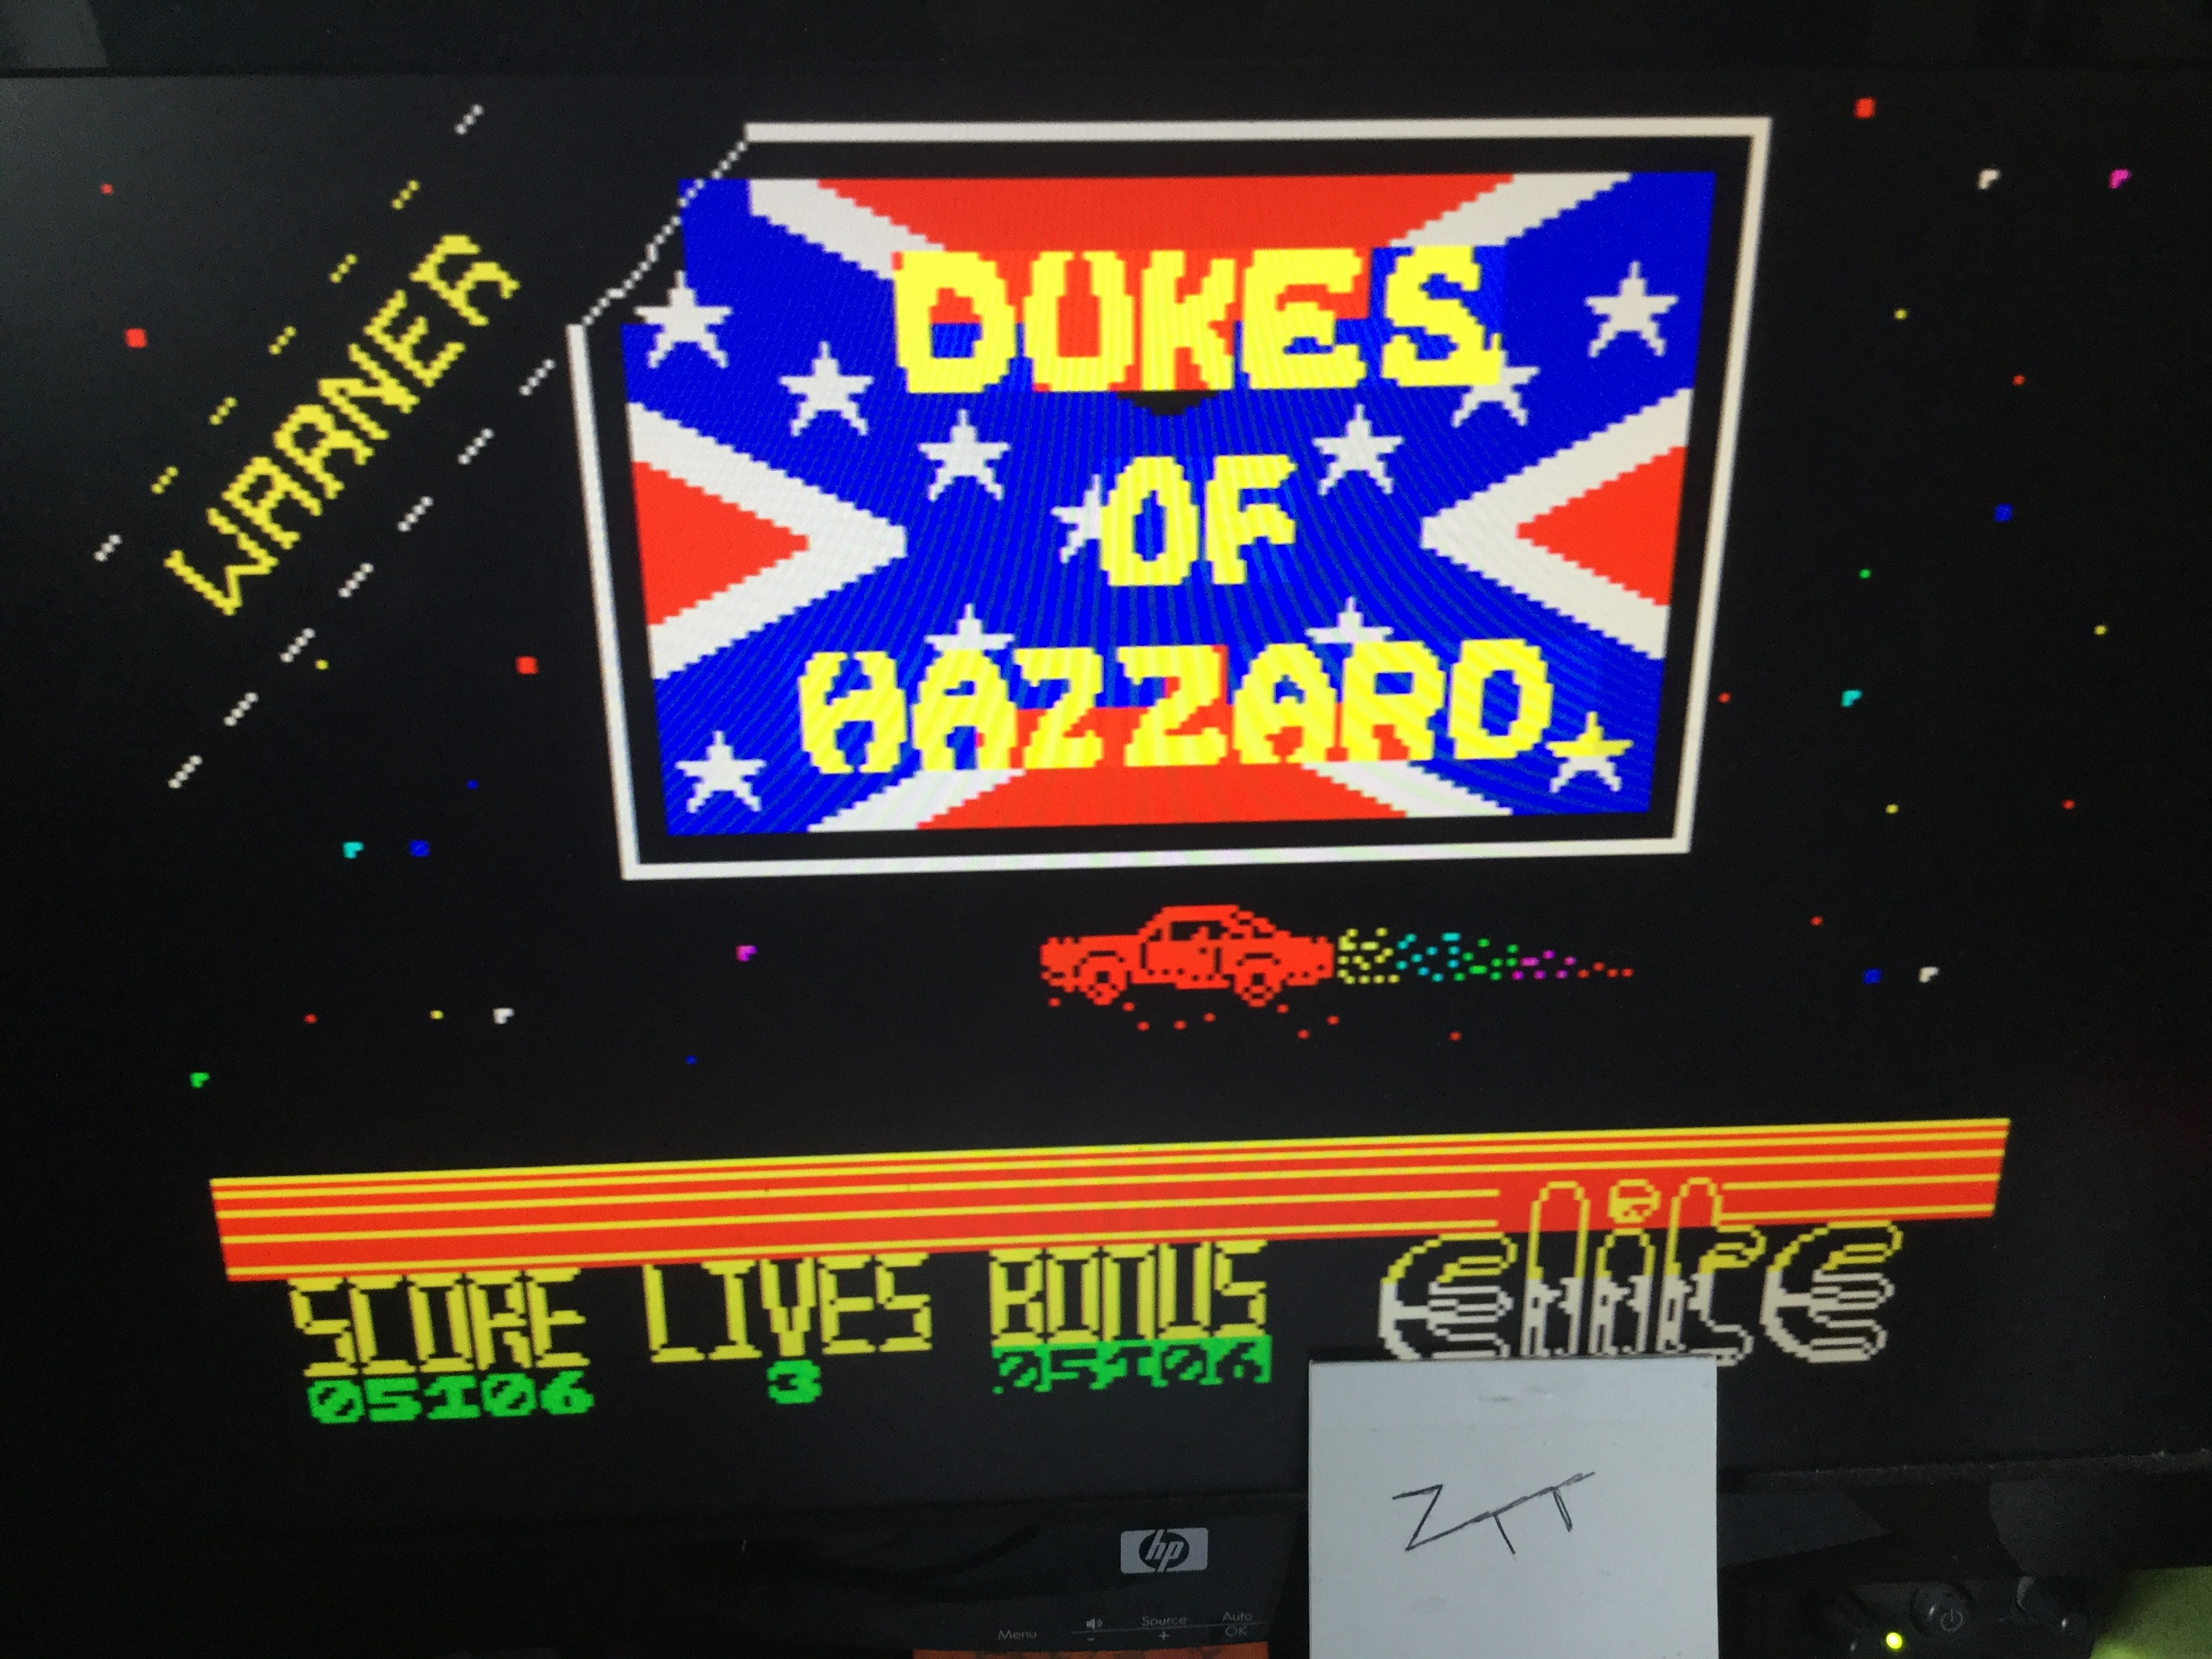 Frankie: The Dukes of Hazzard (ZX Spectrum Emulated) 5,106 points on 2019-08-11 02:00:53